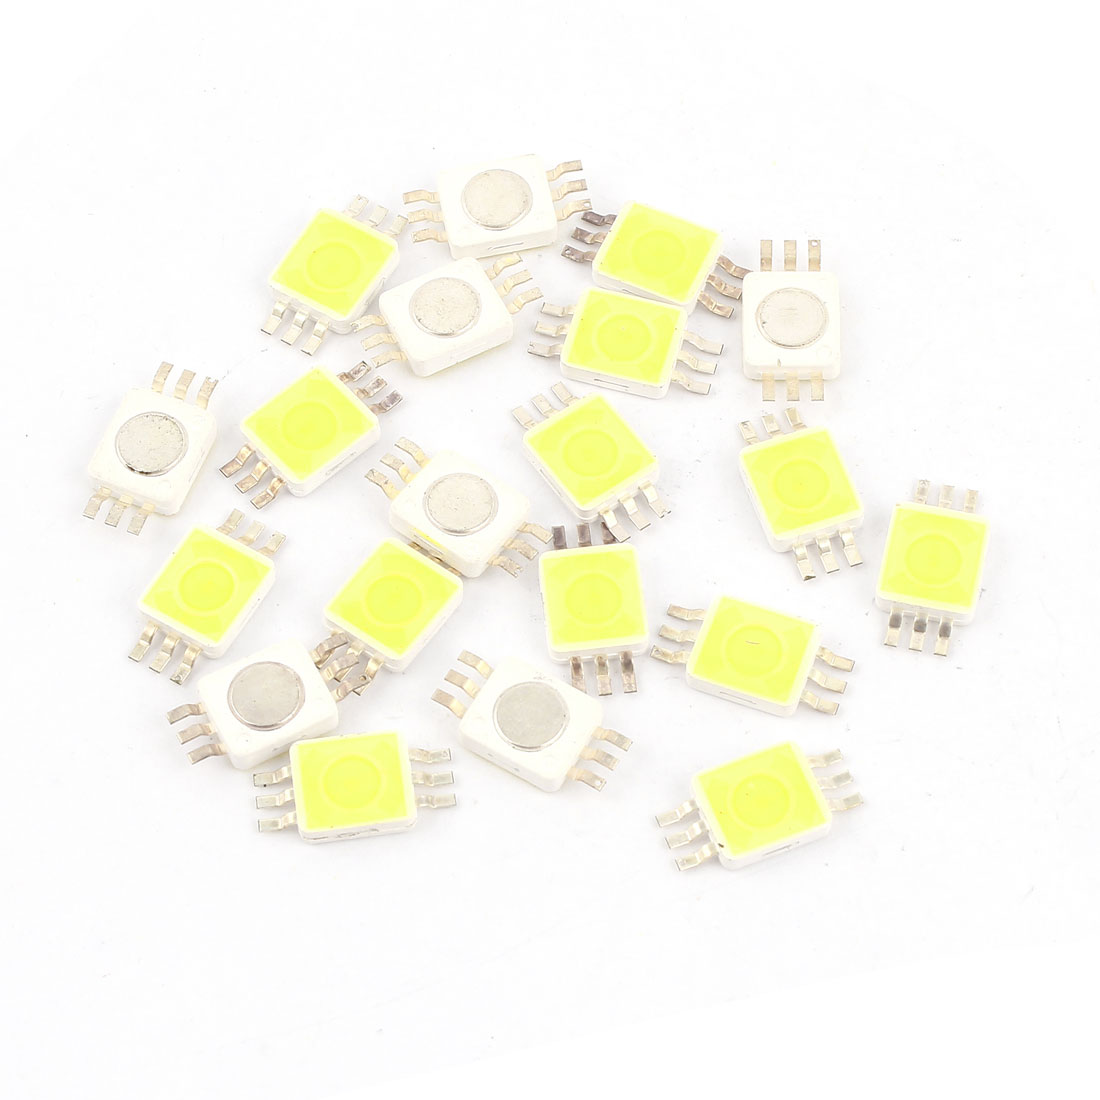 20pcs Pure White Light SMD 9280 LED Bead Chip Bulb 3.0-3.6V 350mA 1W 90LM